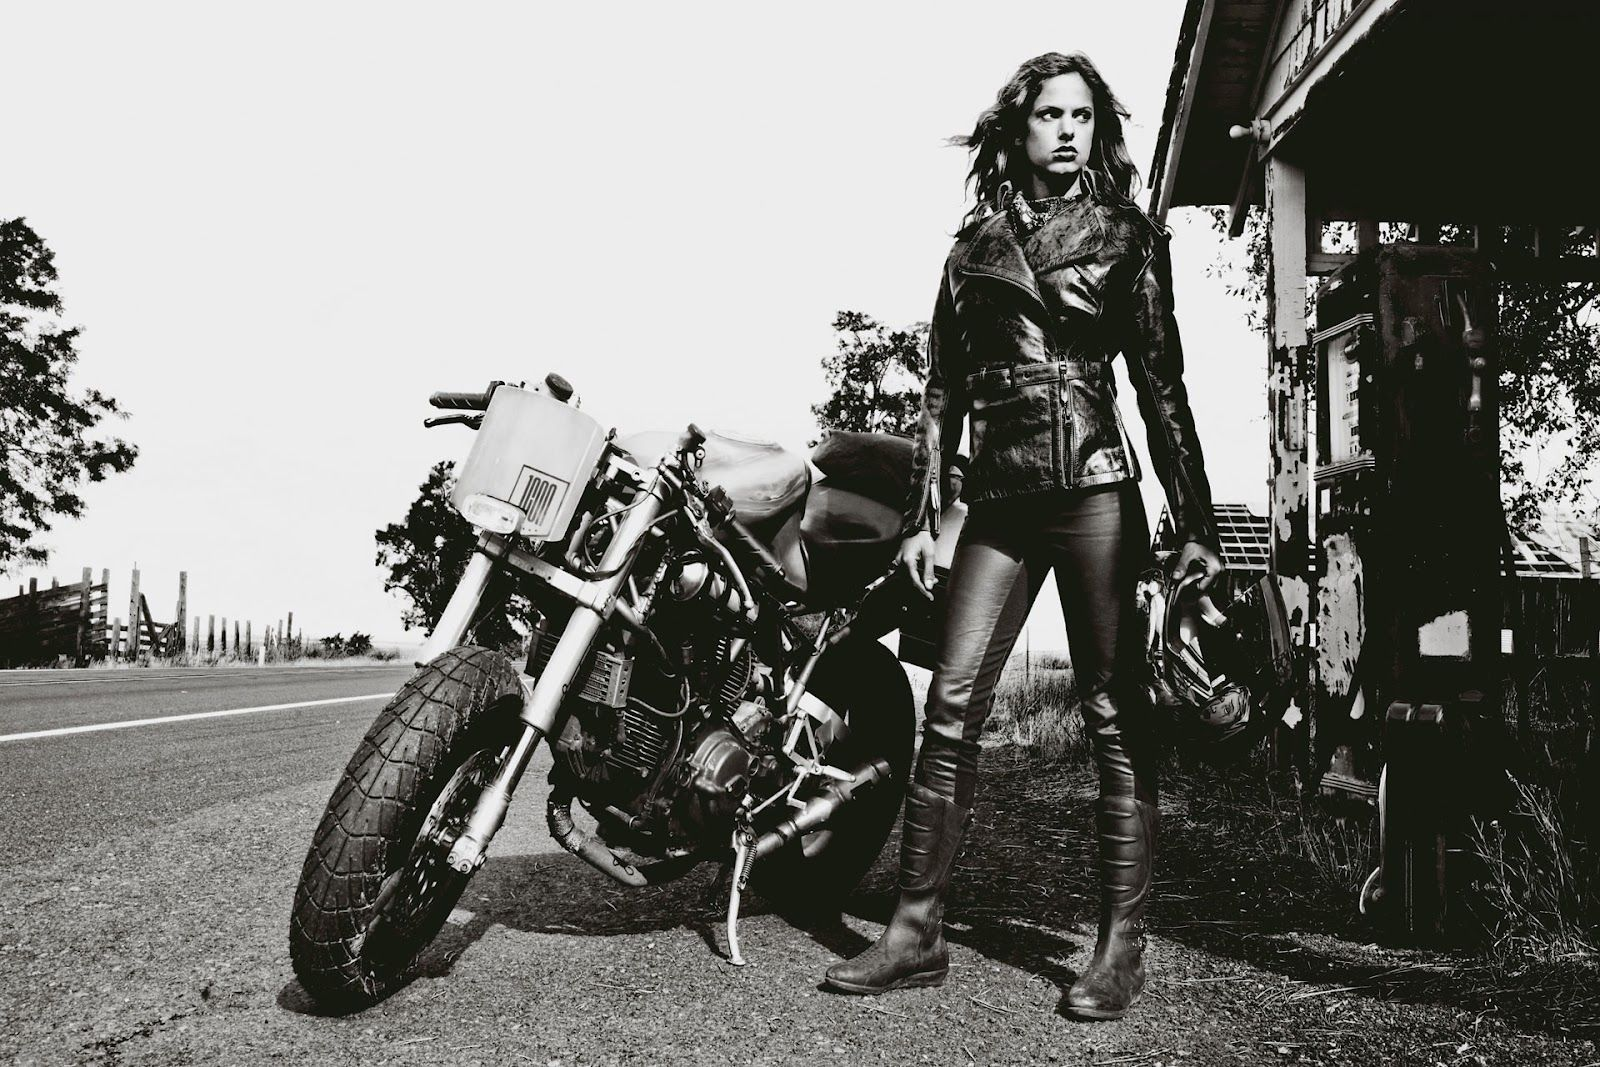 Mad Max motorcycle girl   Return of the Cafe Racers